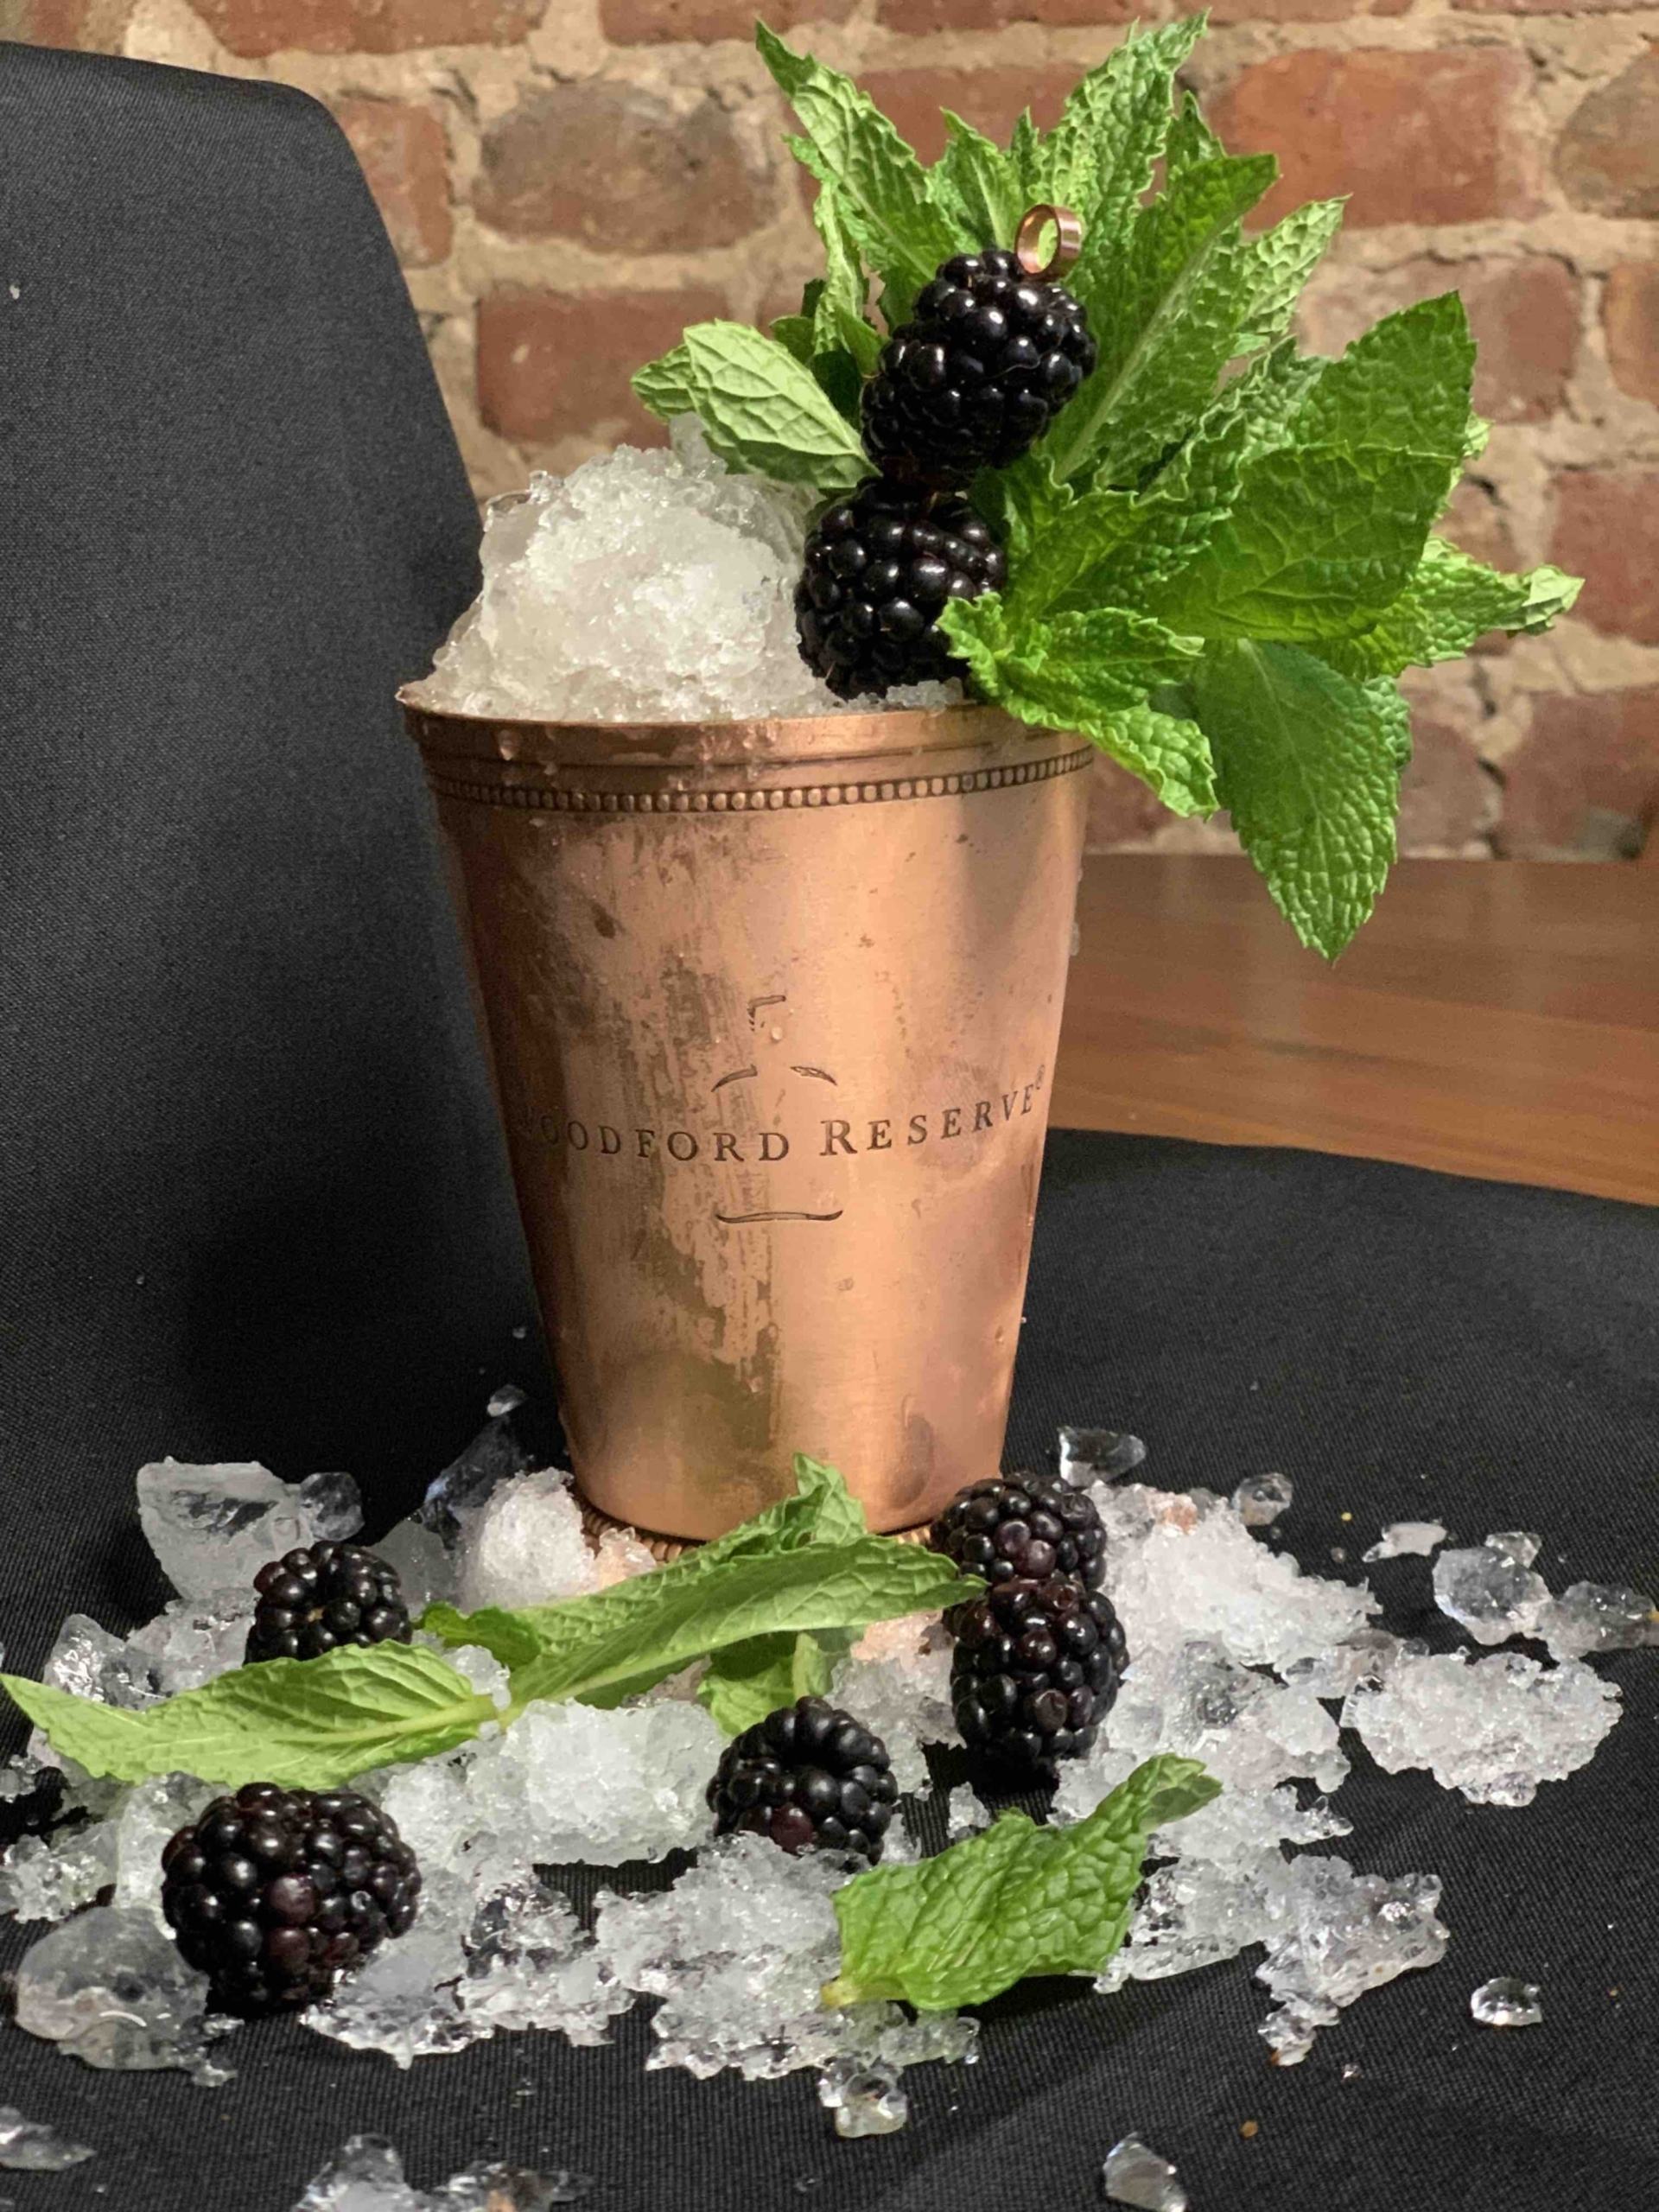 Celebrate Kentucky Derby Day With This NYC Mint Julep And More This Weekend